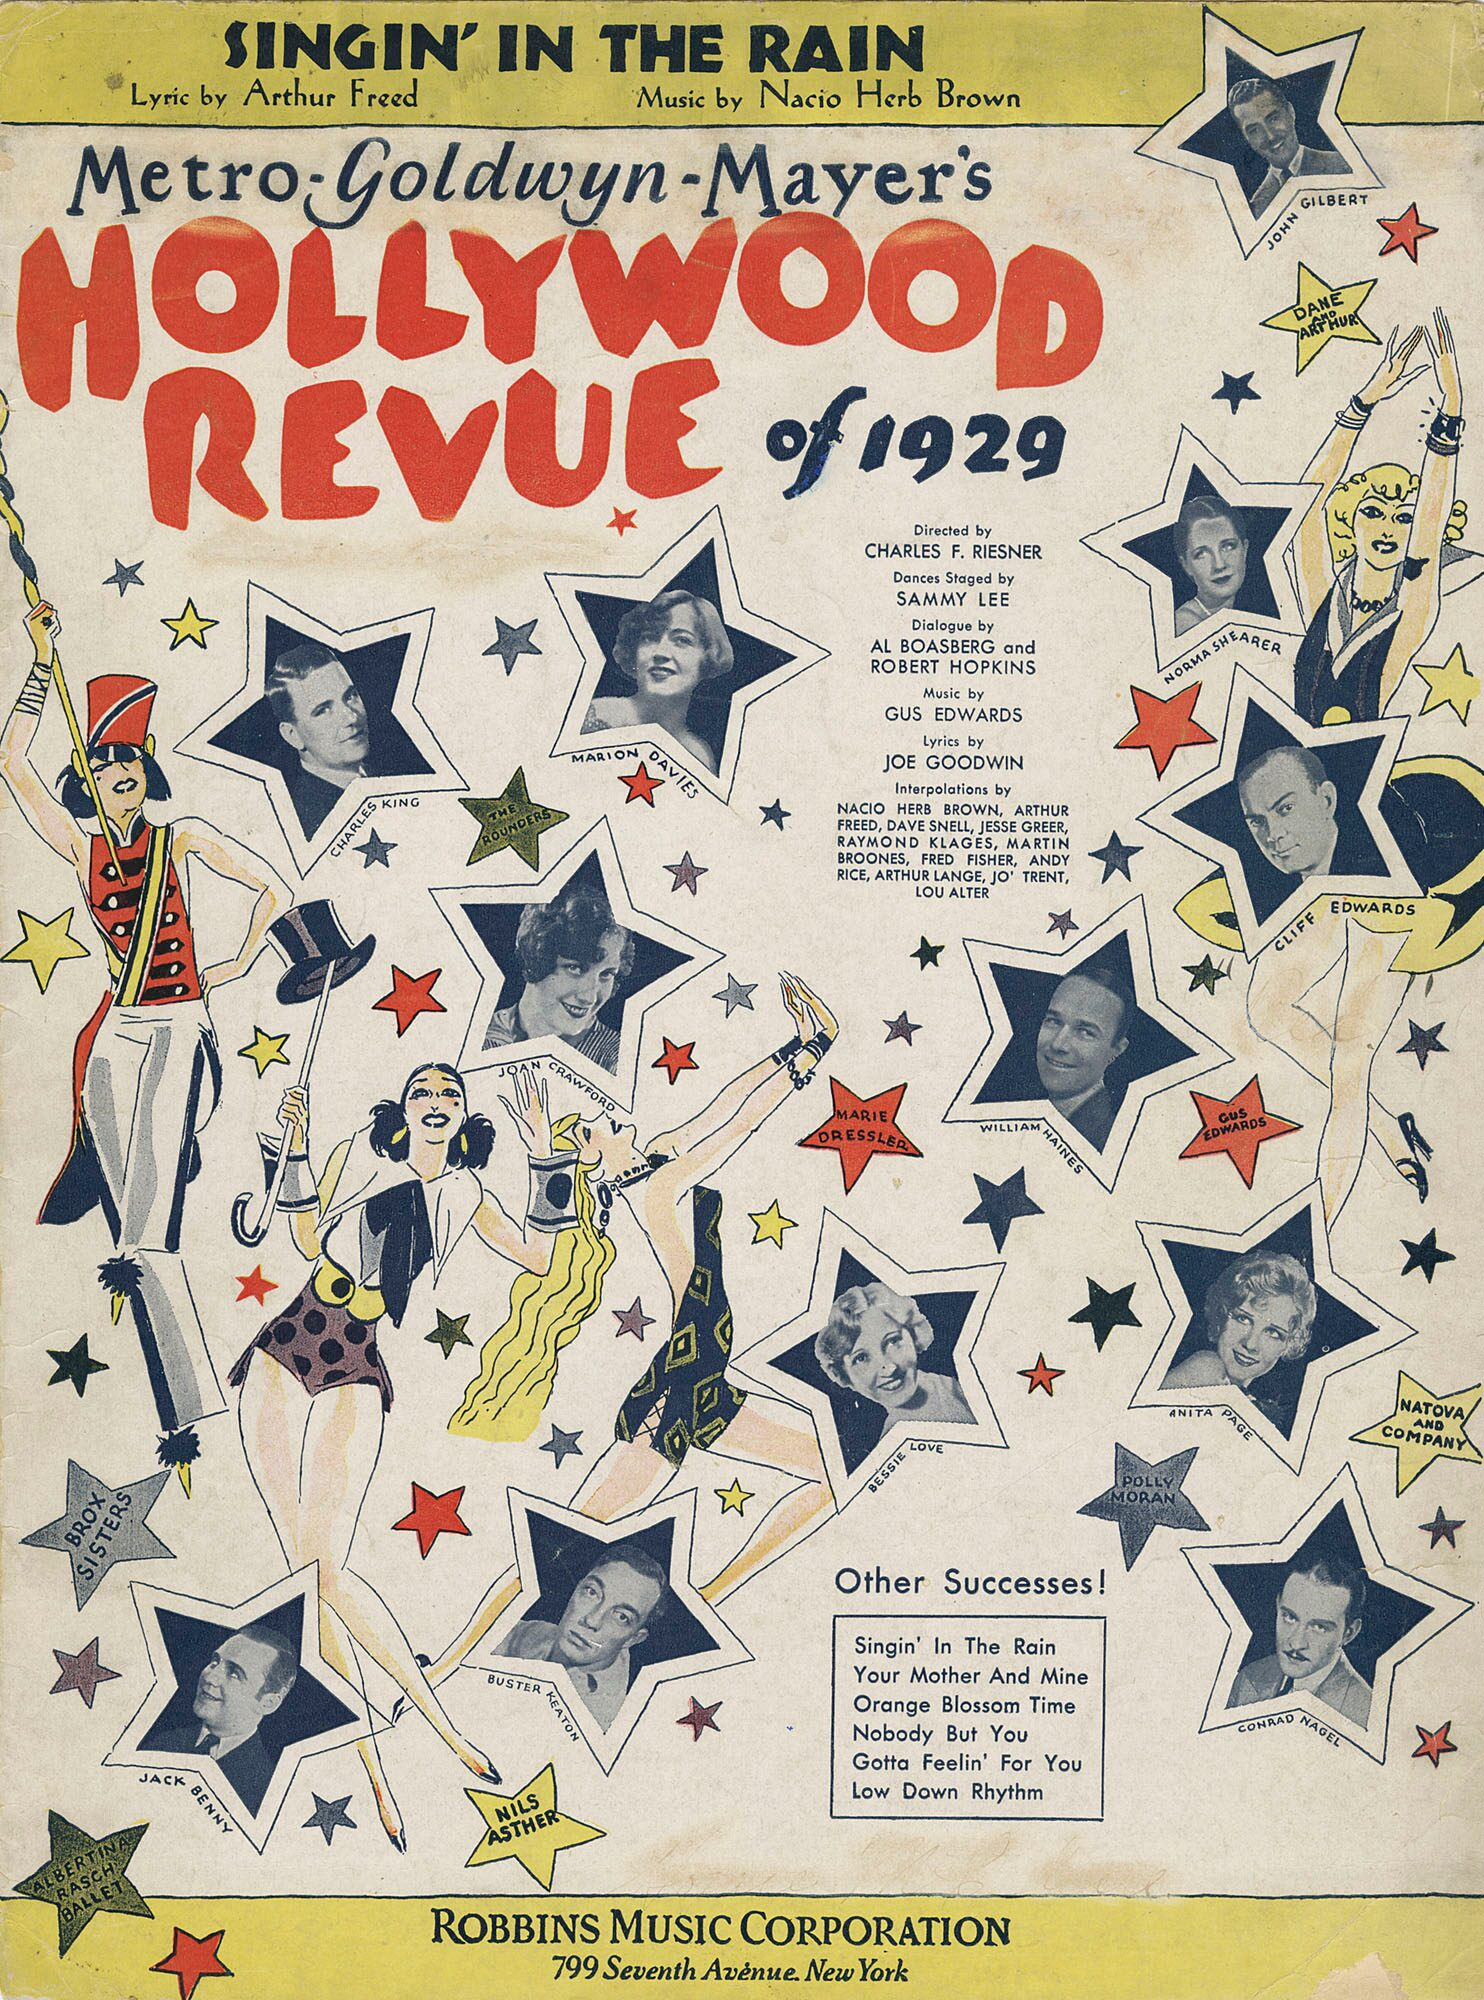 Written by Arthur Freed and Nacio Herb Brown